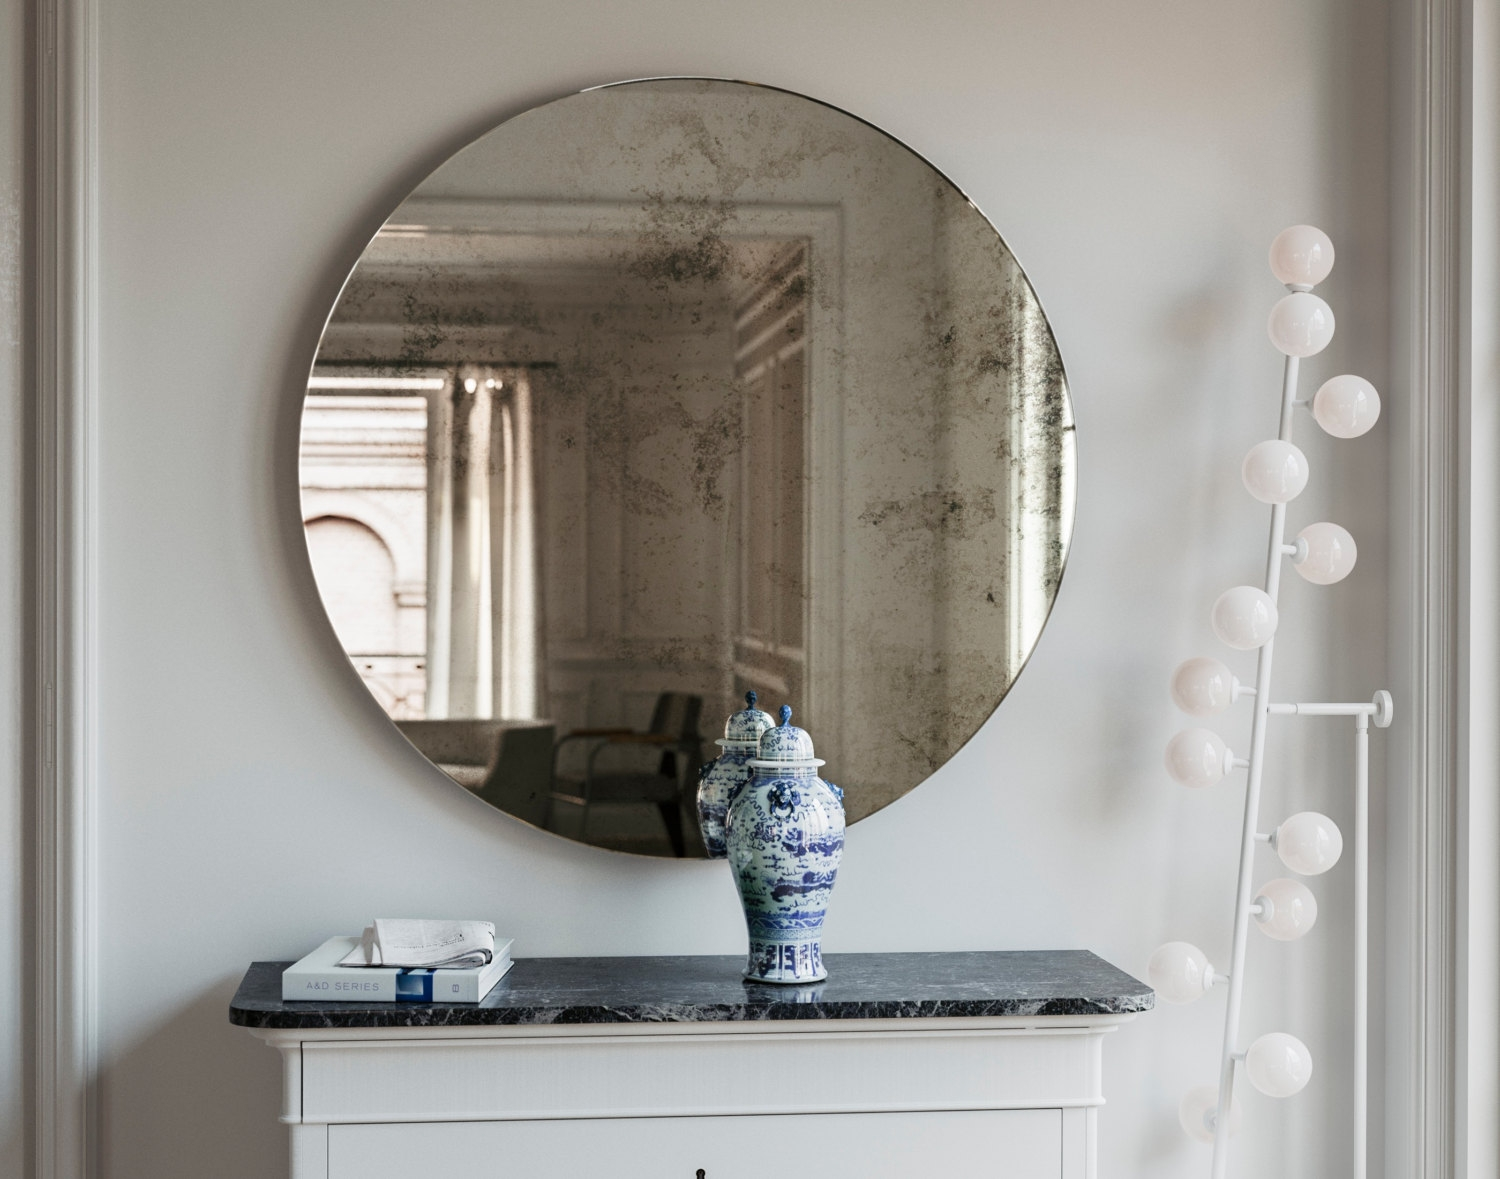 Frameless Mirror 1920s Inspired Art Deco Glass Hanging Wall Pertaining To Antique Frameless Mirror (View 7 of 15)